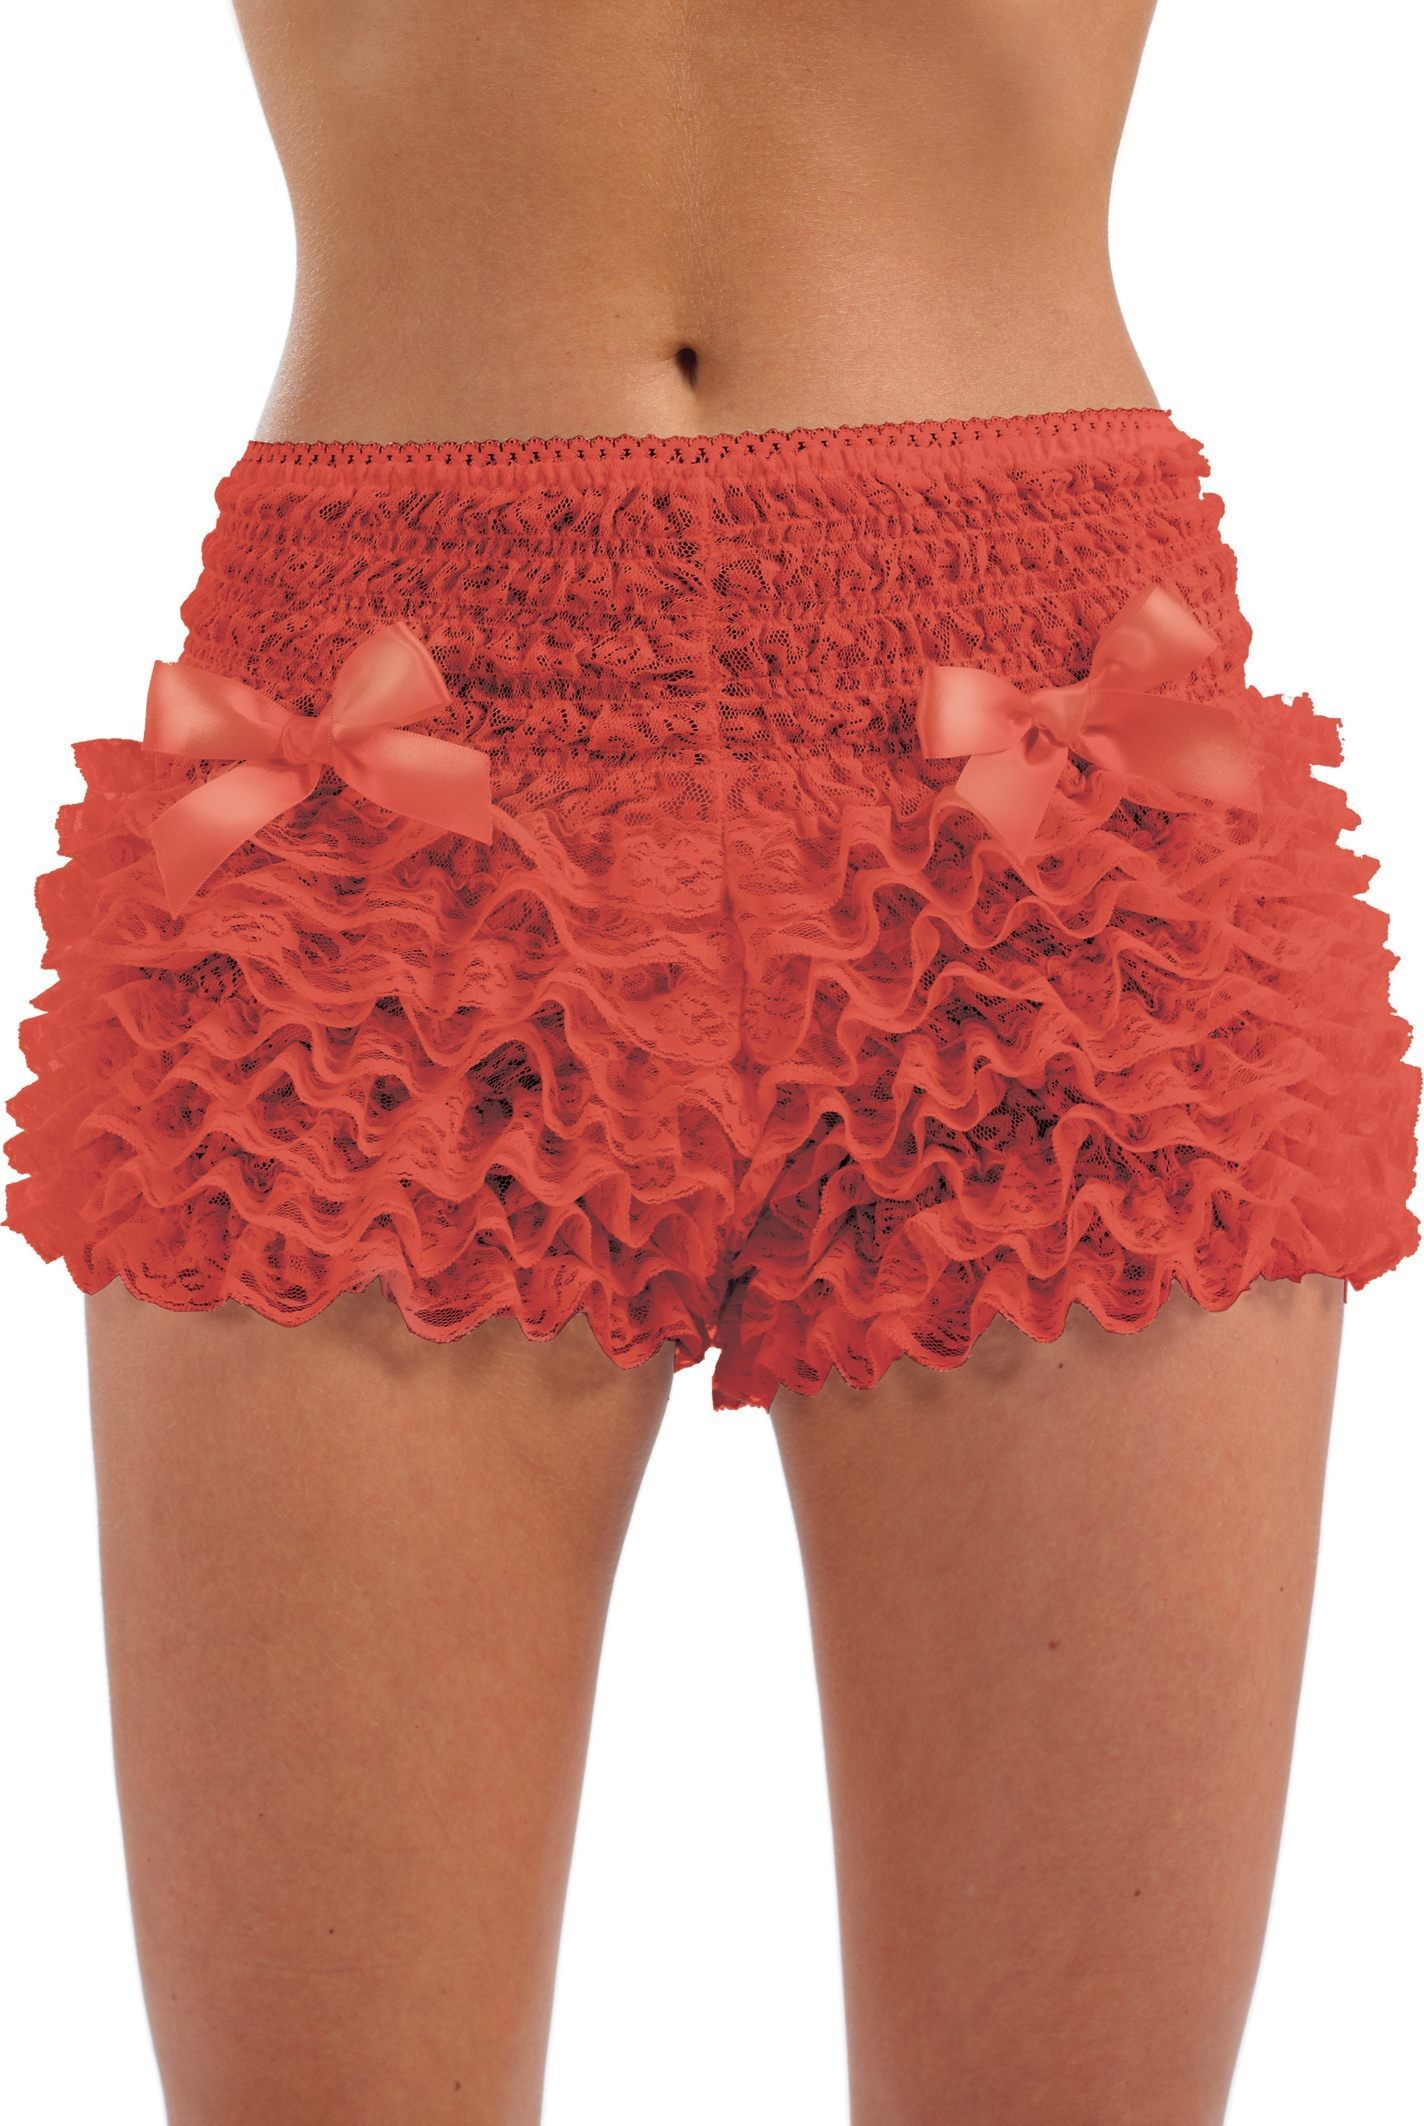 Red Ruffled Pants (Burlesque Fancy Dress)